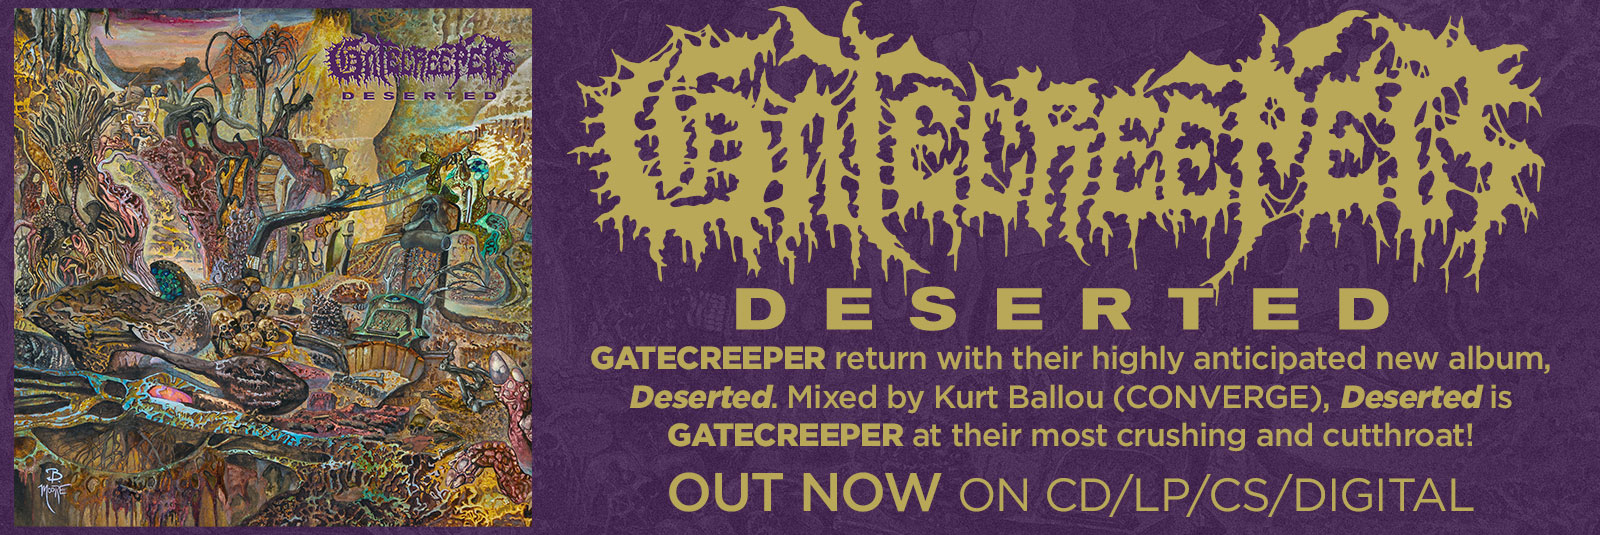 gatecreeper-deserted-death-metal-relapse-out-now